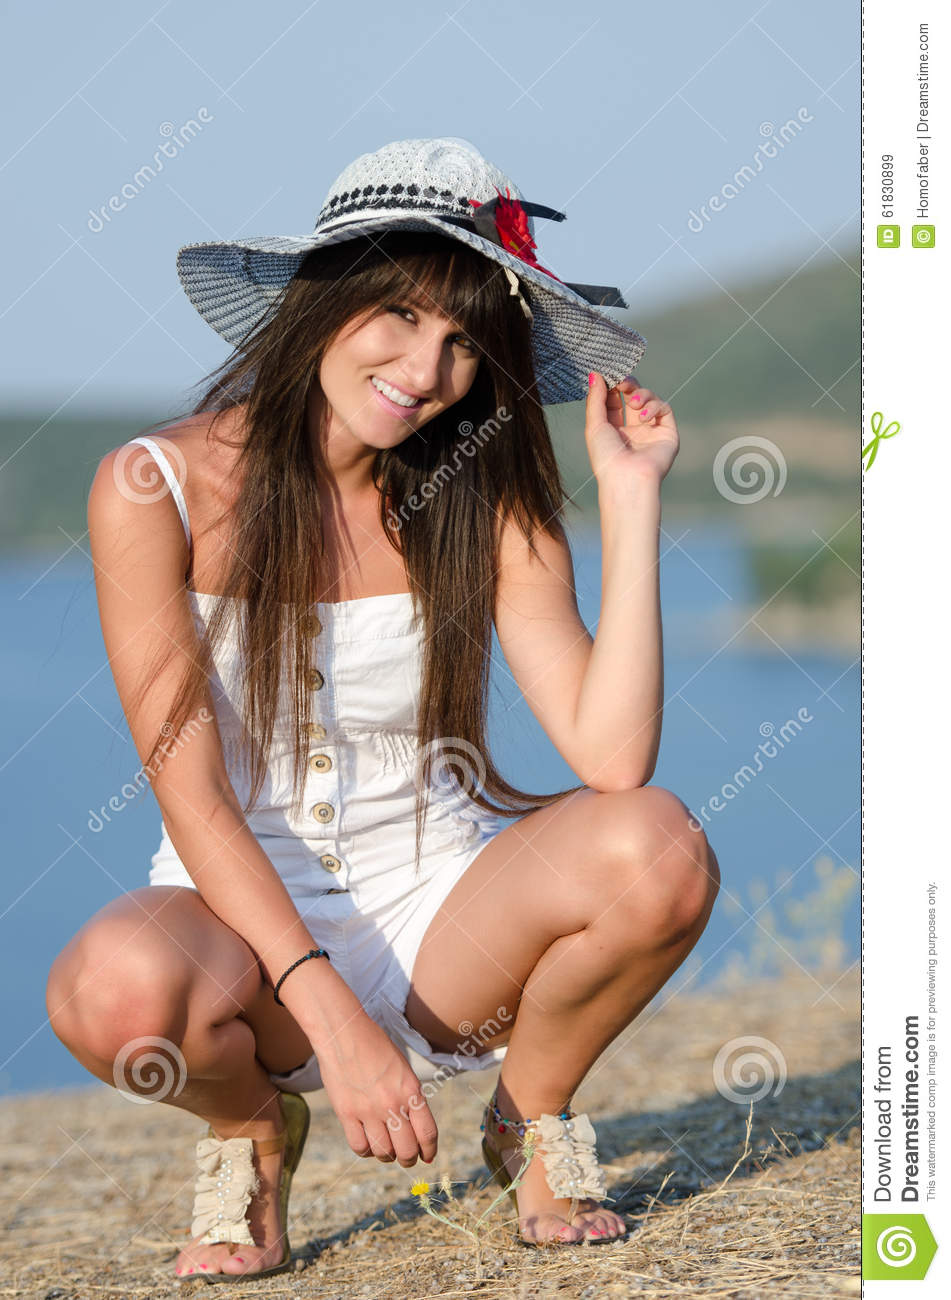 Woman dressed with white coveralls rompers joying the sunny day